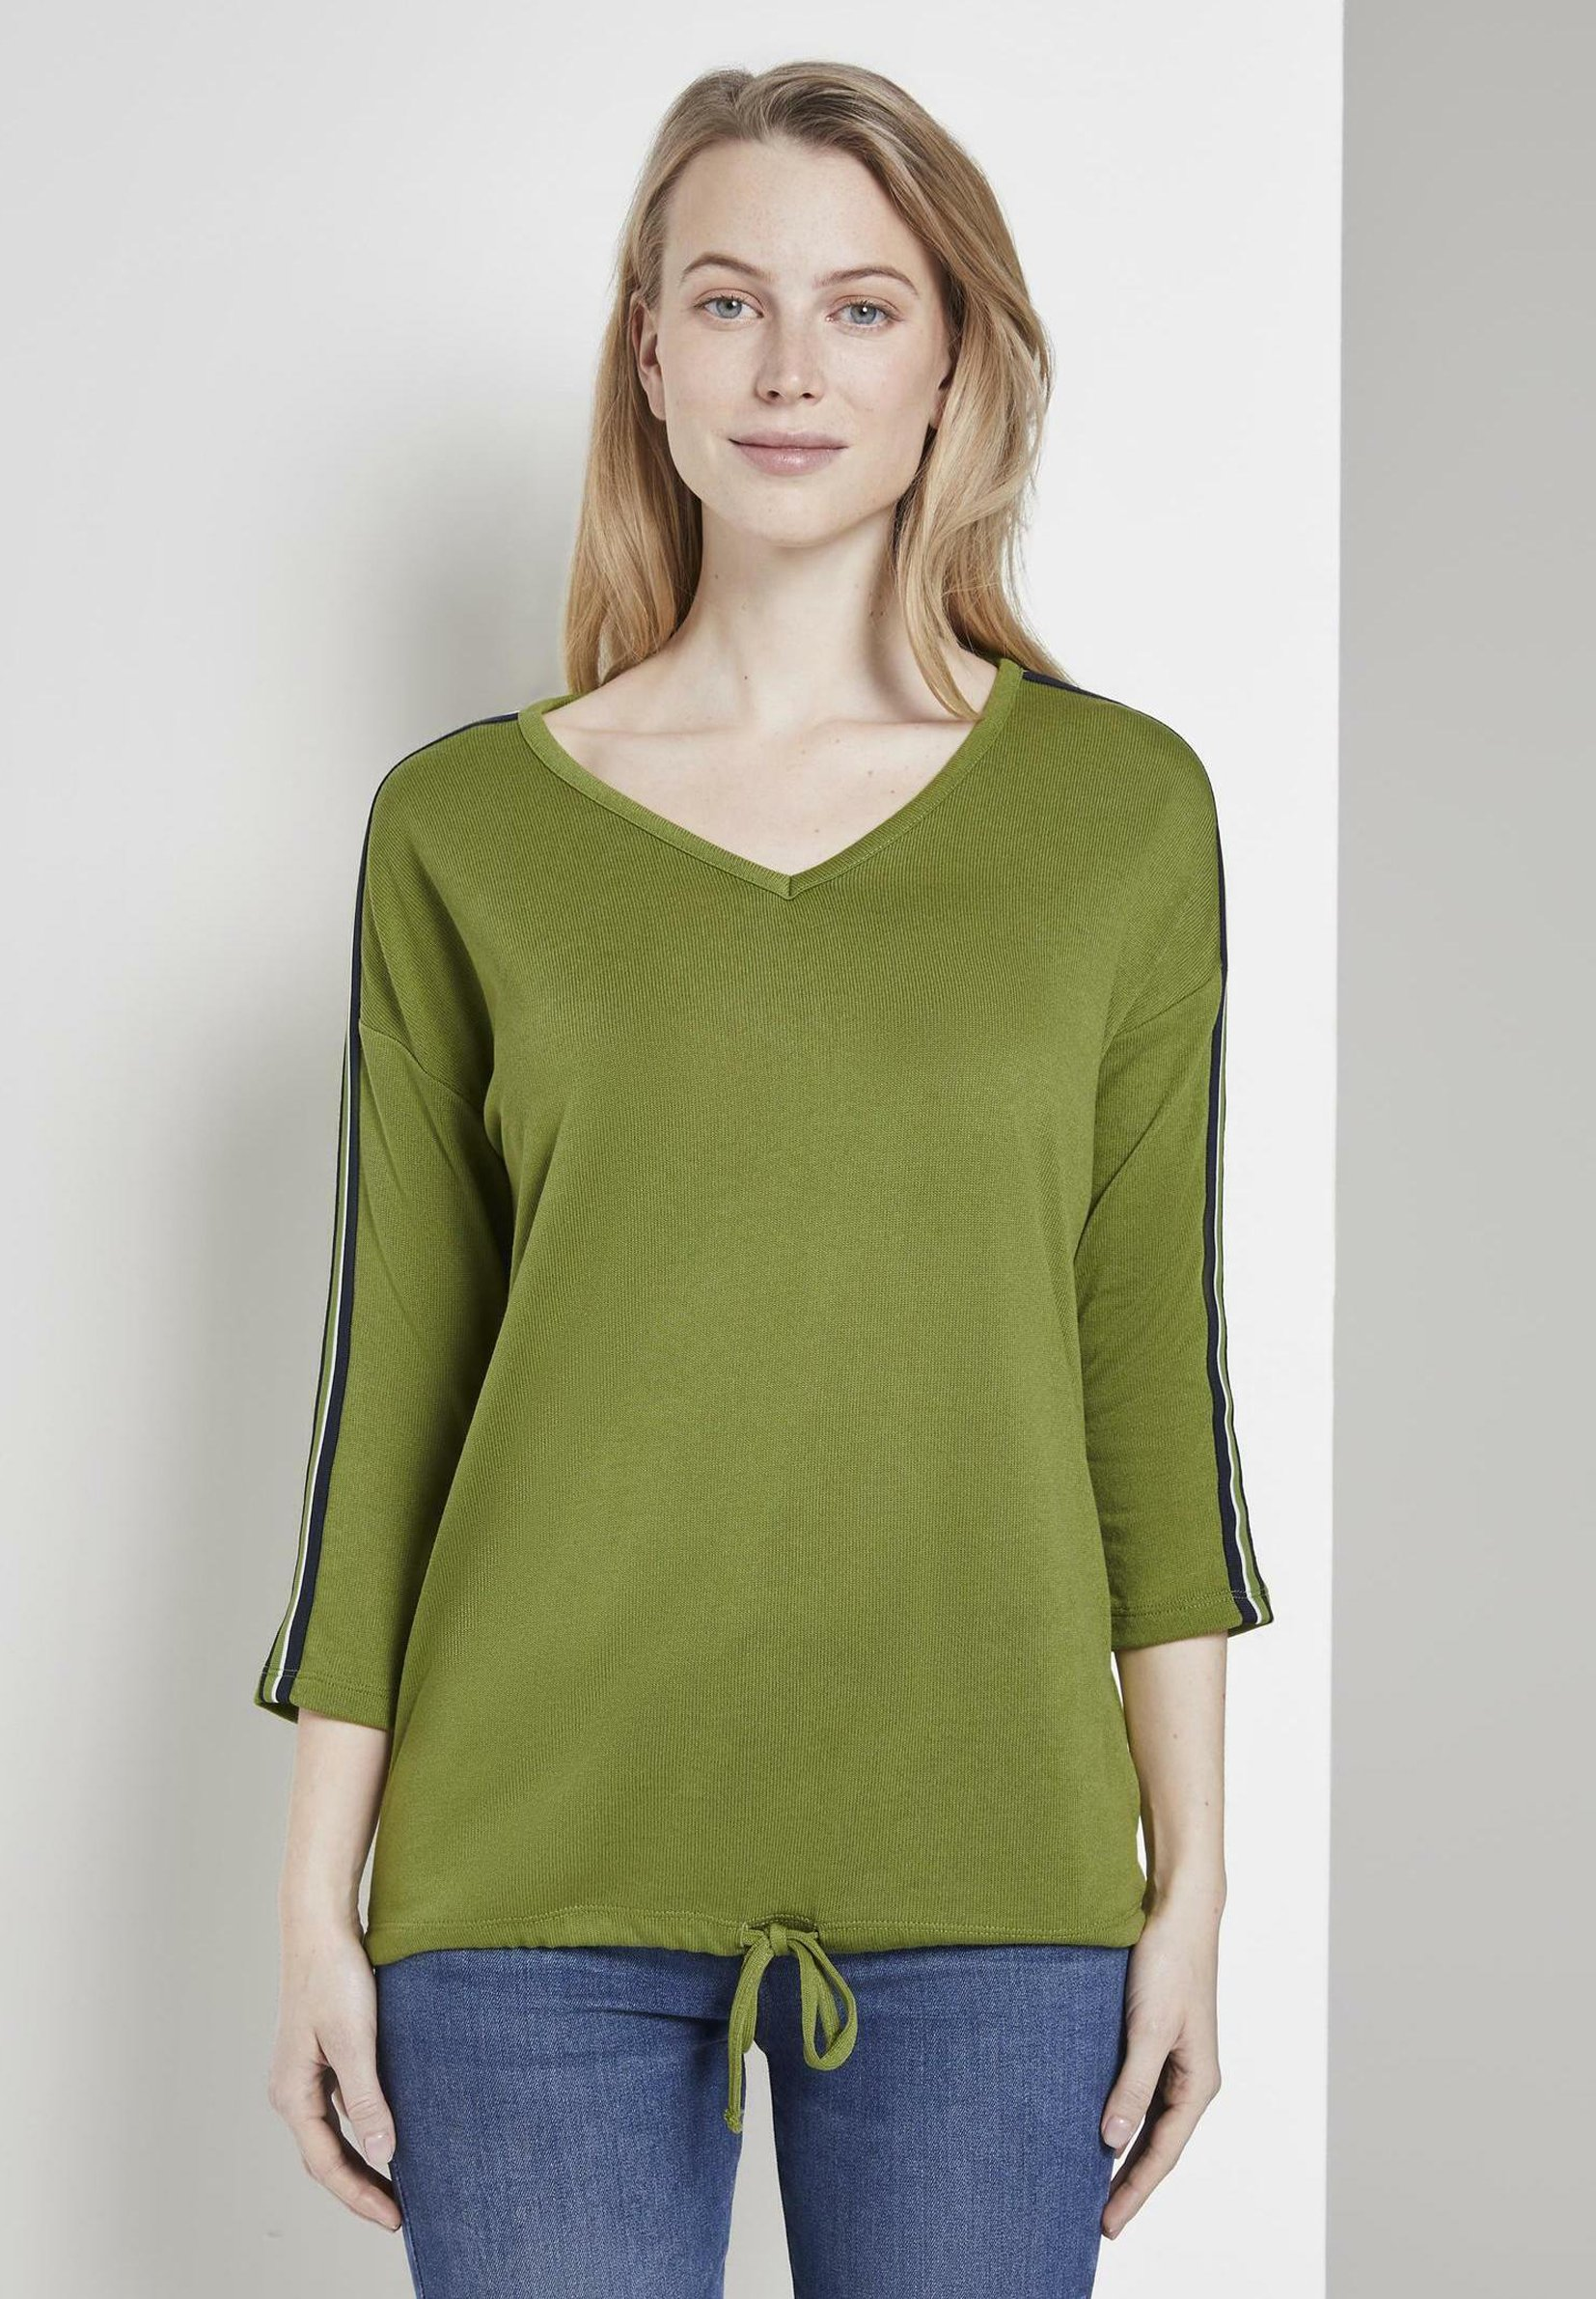 TOM TAILOR 3/4 ARM SHIRT MIT TAPE - T-shirt à manches longues - wood green - Tops & T-shirts Femme FPgtd